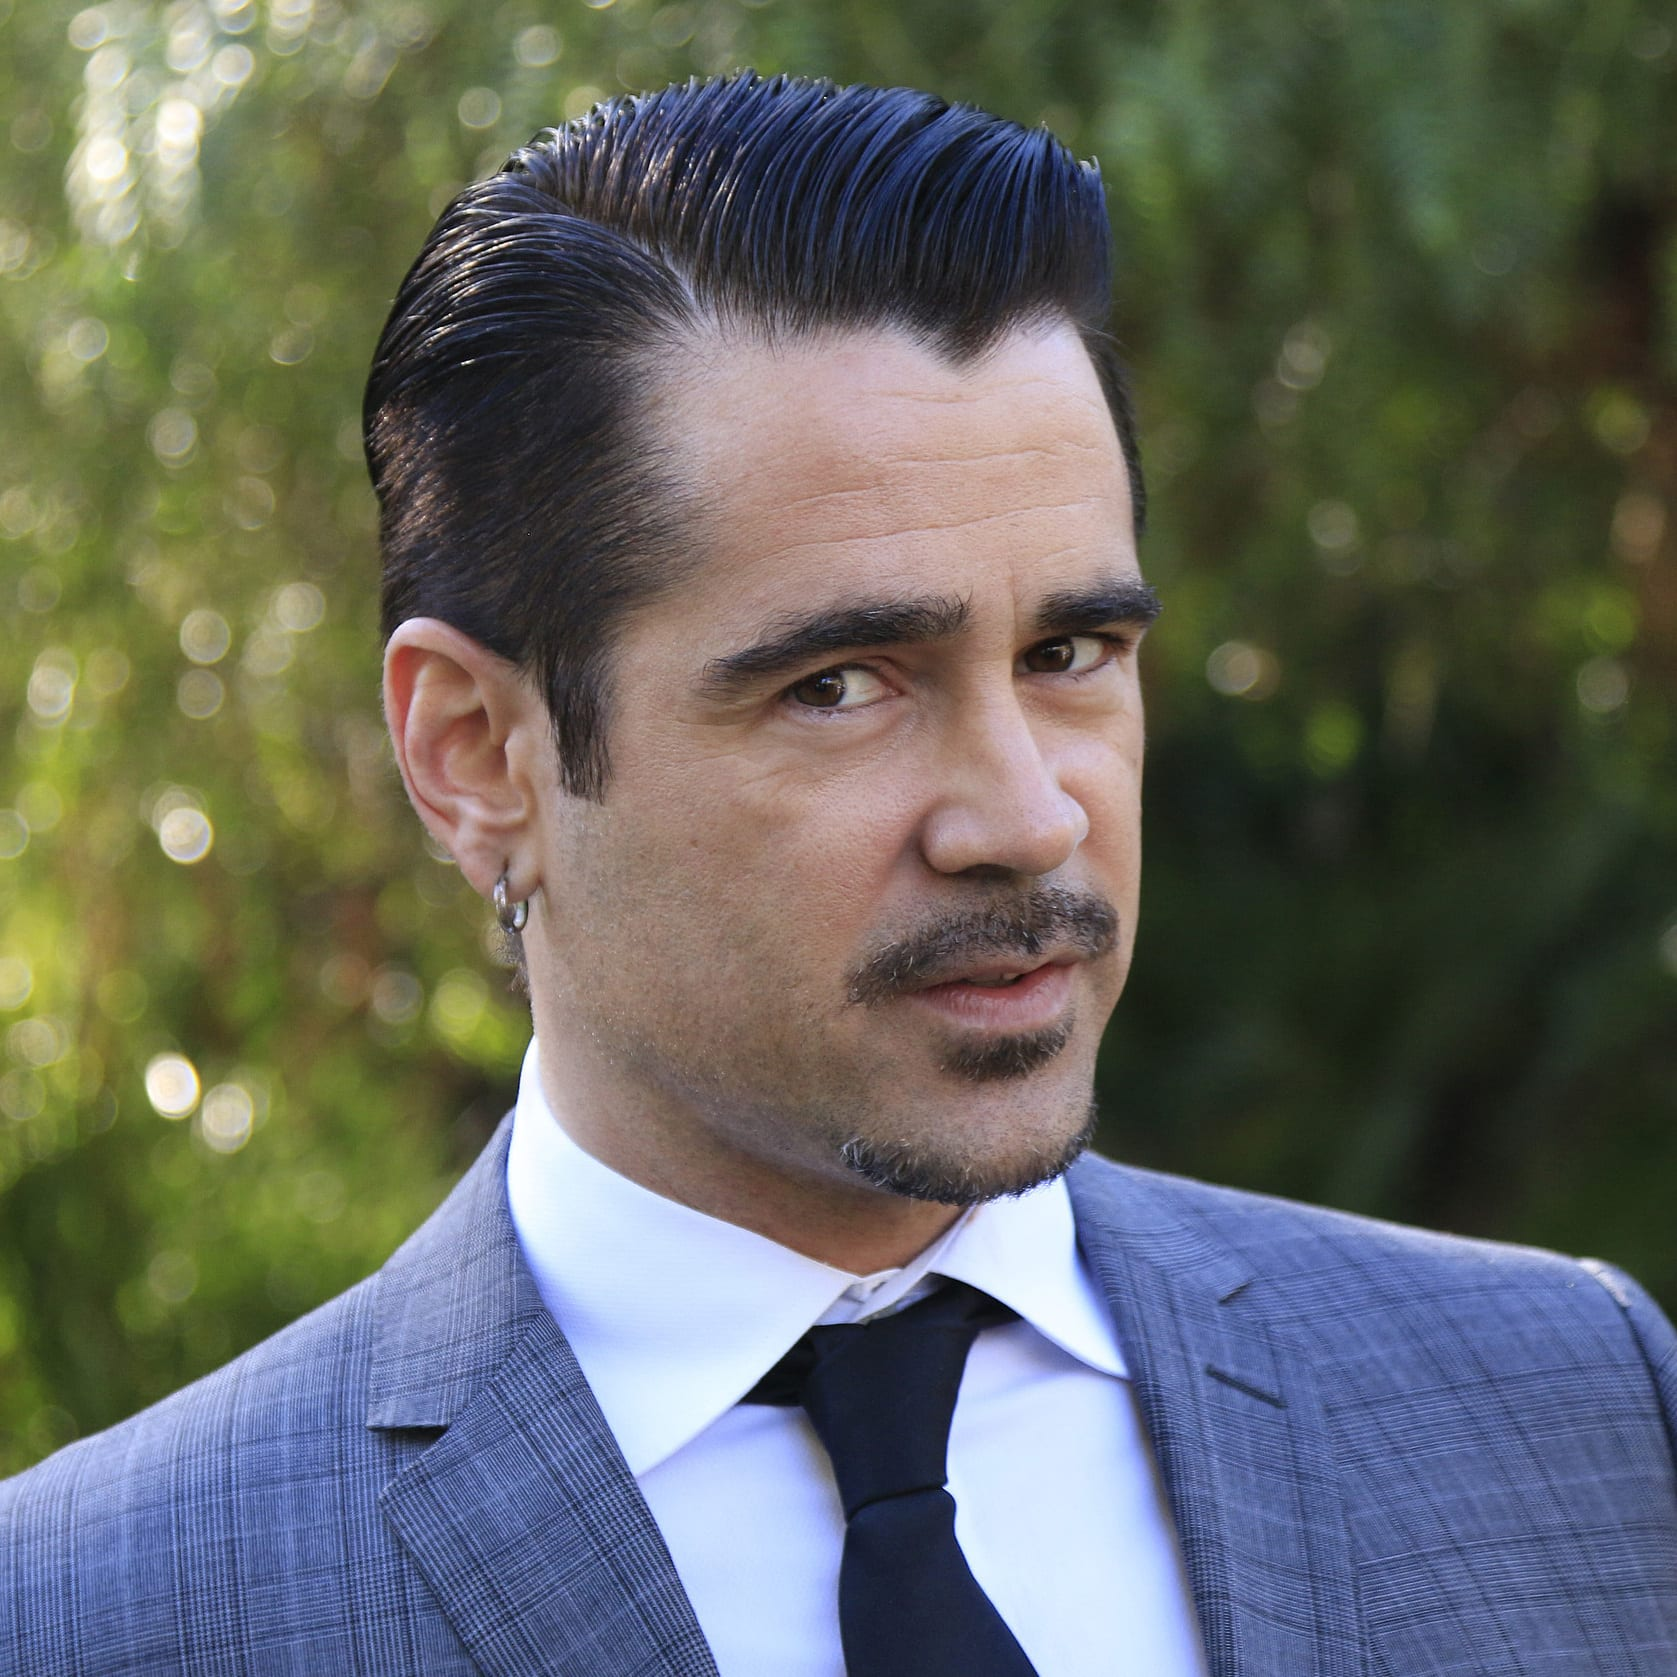 Colin Farrell Slicked Back Side Part